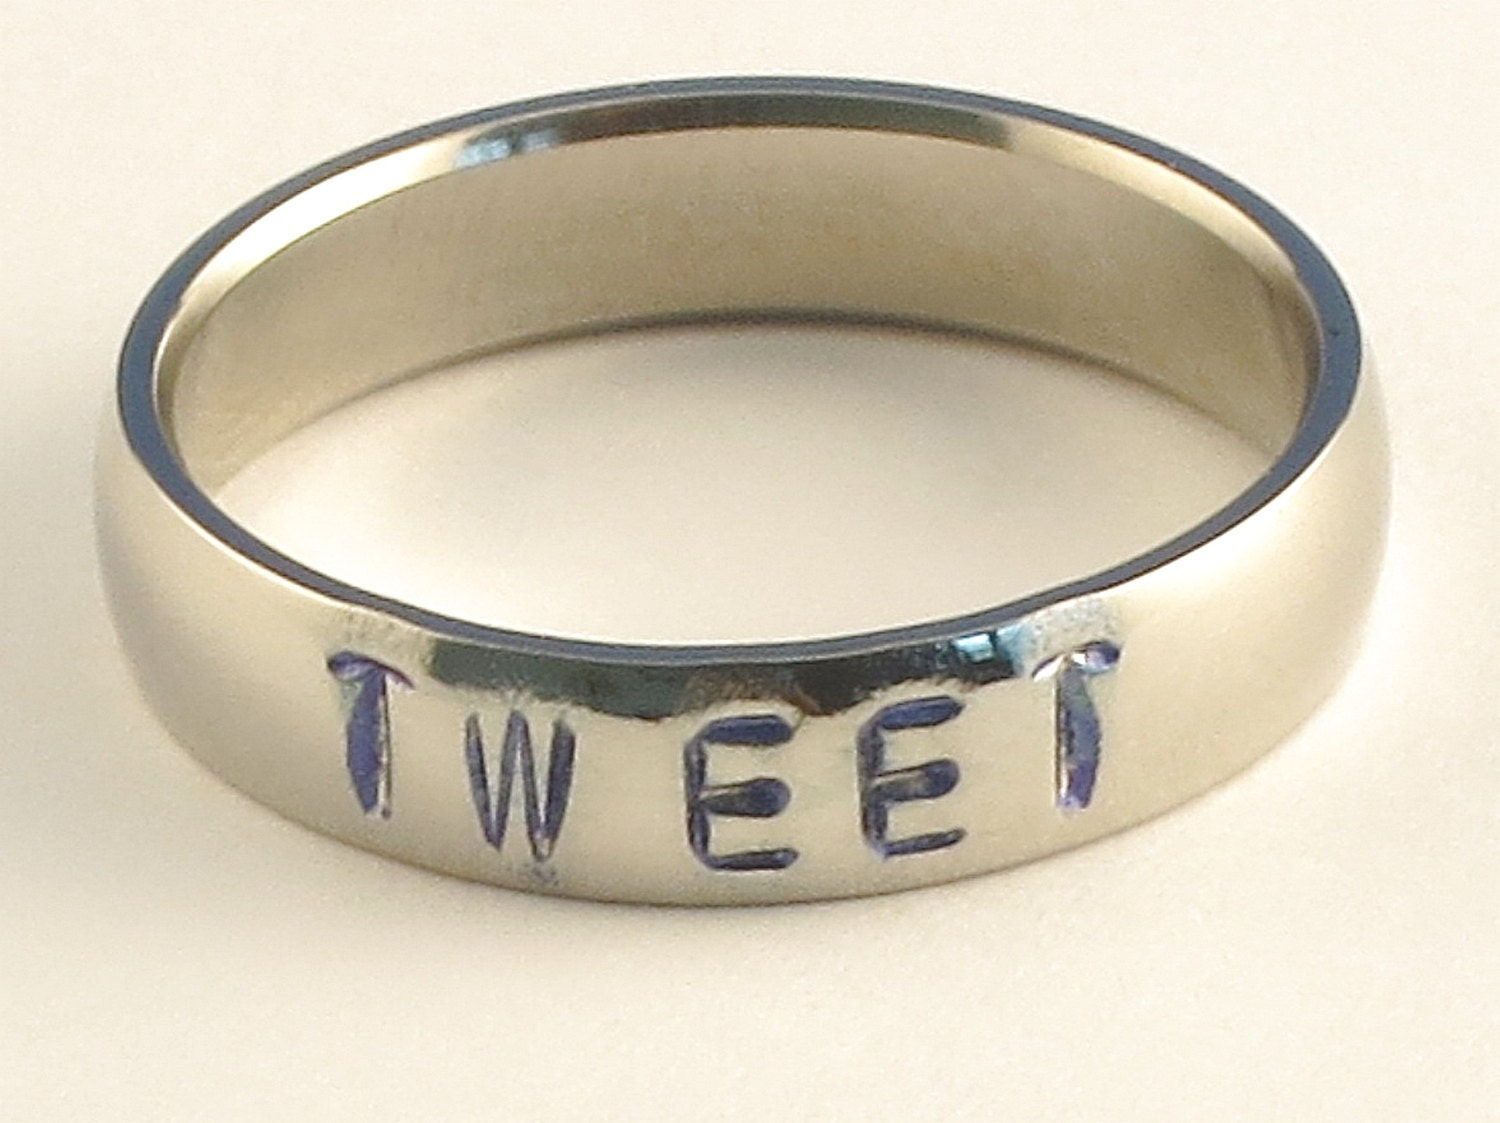 TWEET - Personalized Hand Stamped Customized Stainless Steel Low Dome Name Ring 5mm Ring Sizes 3-14